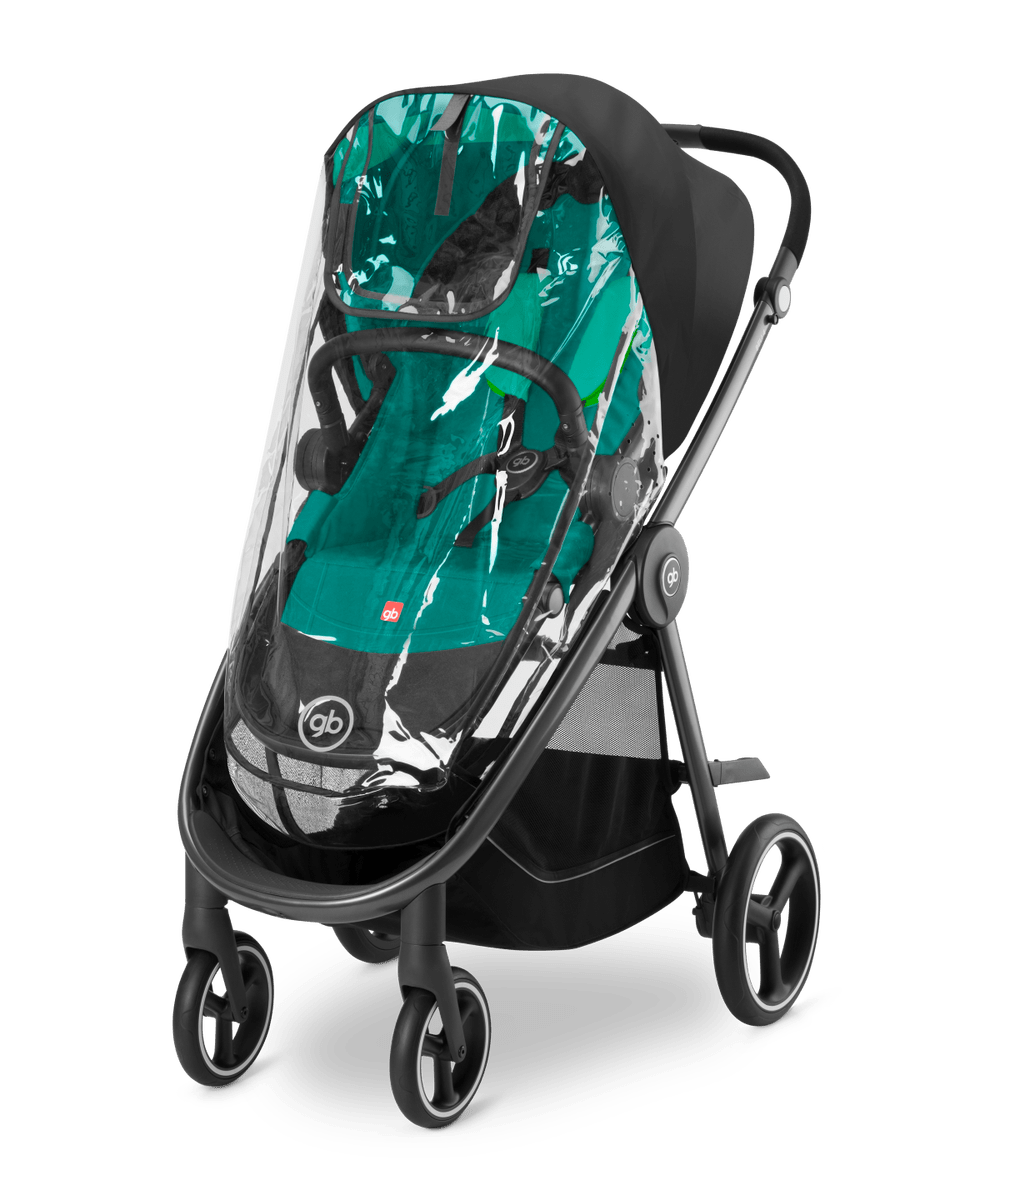 GB Rain Cover QBIT / QBIT+ Plus Urban stroller, Rain